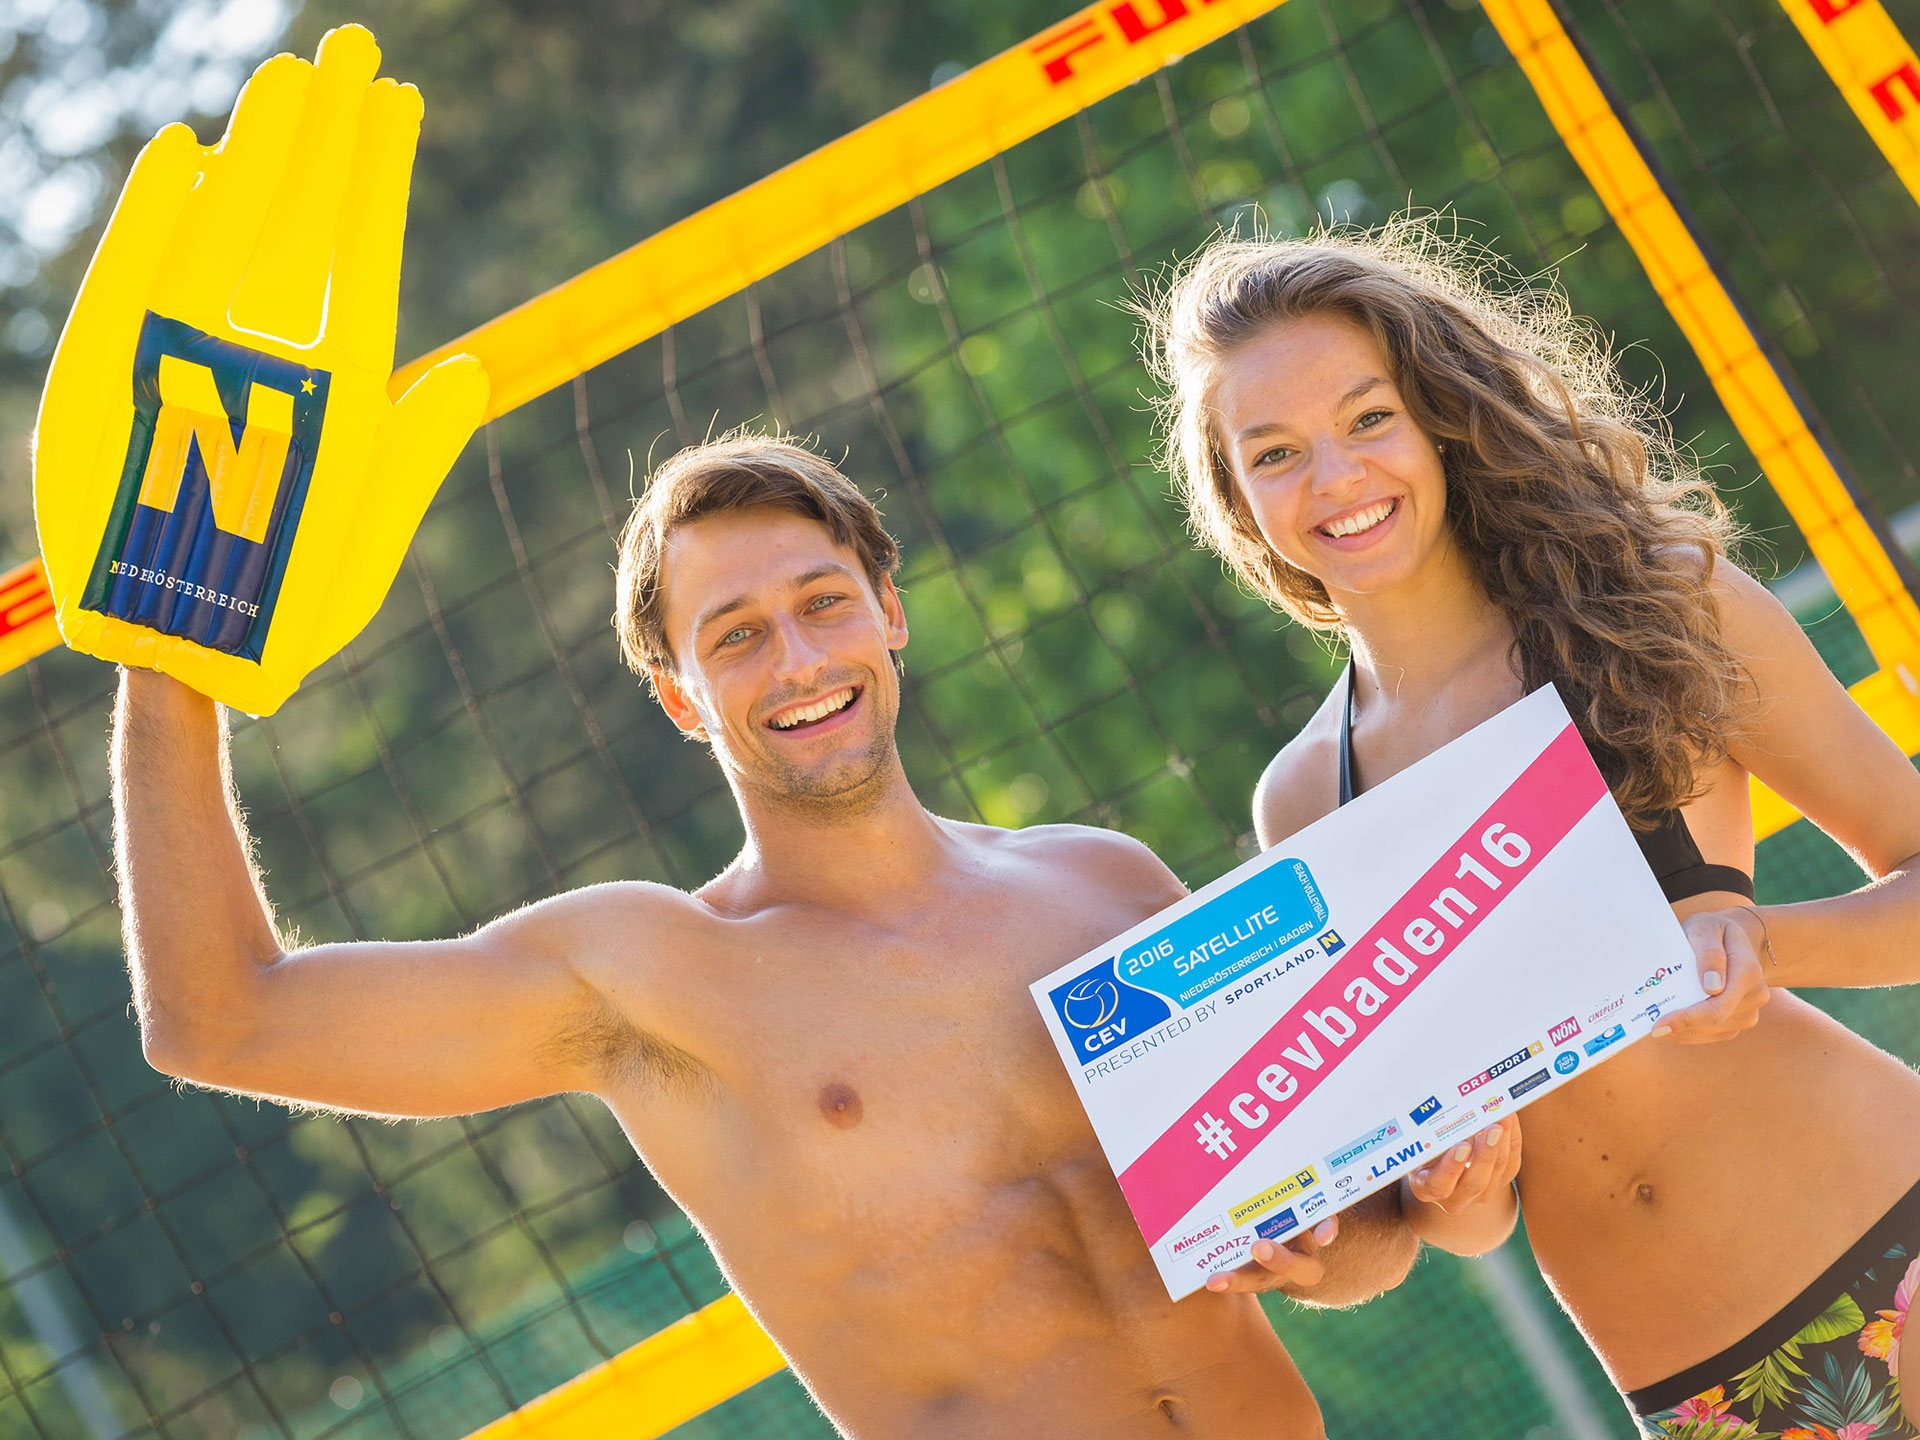 The CEV Satellite Baden 2016 presented by SPORT.LAND.NÖ takes place from 8-12 June Photo credit: CEV Satellite Baden.